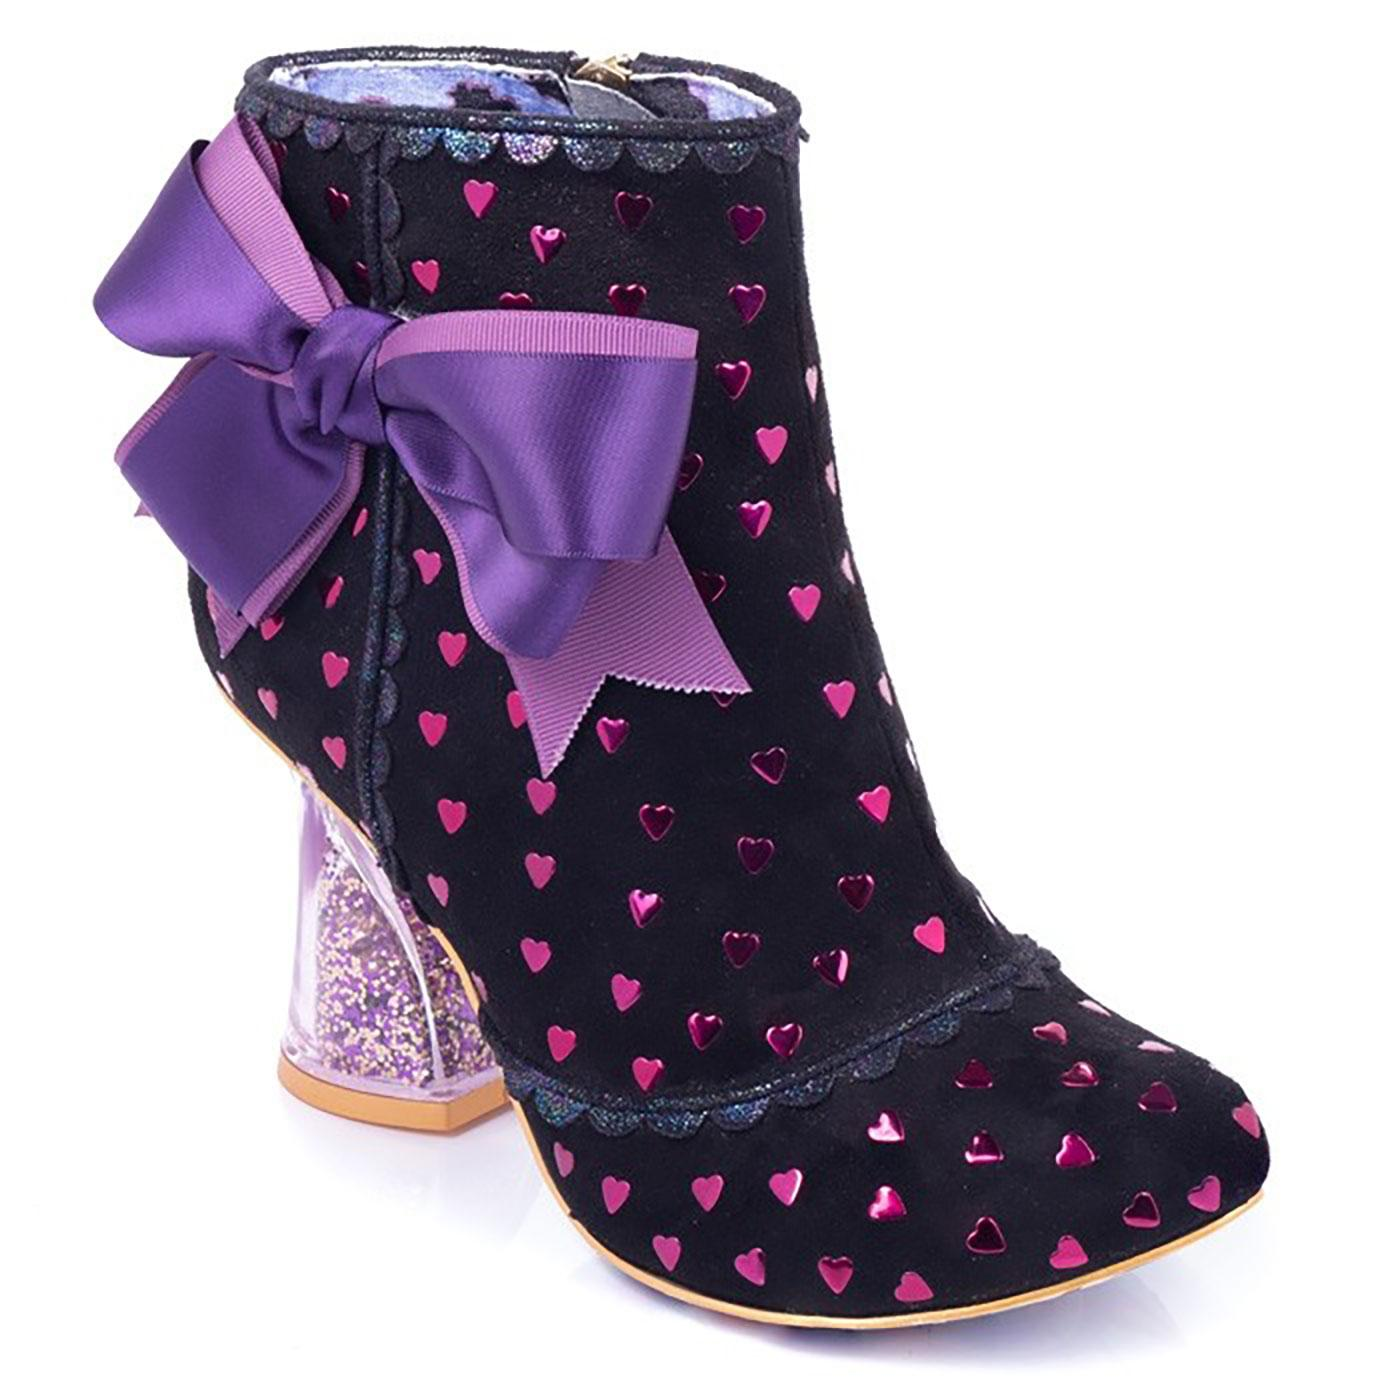 Outta Time IRREGULAR CHOICE Glitter Heel Boots